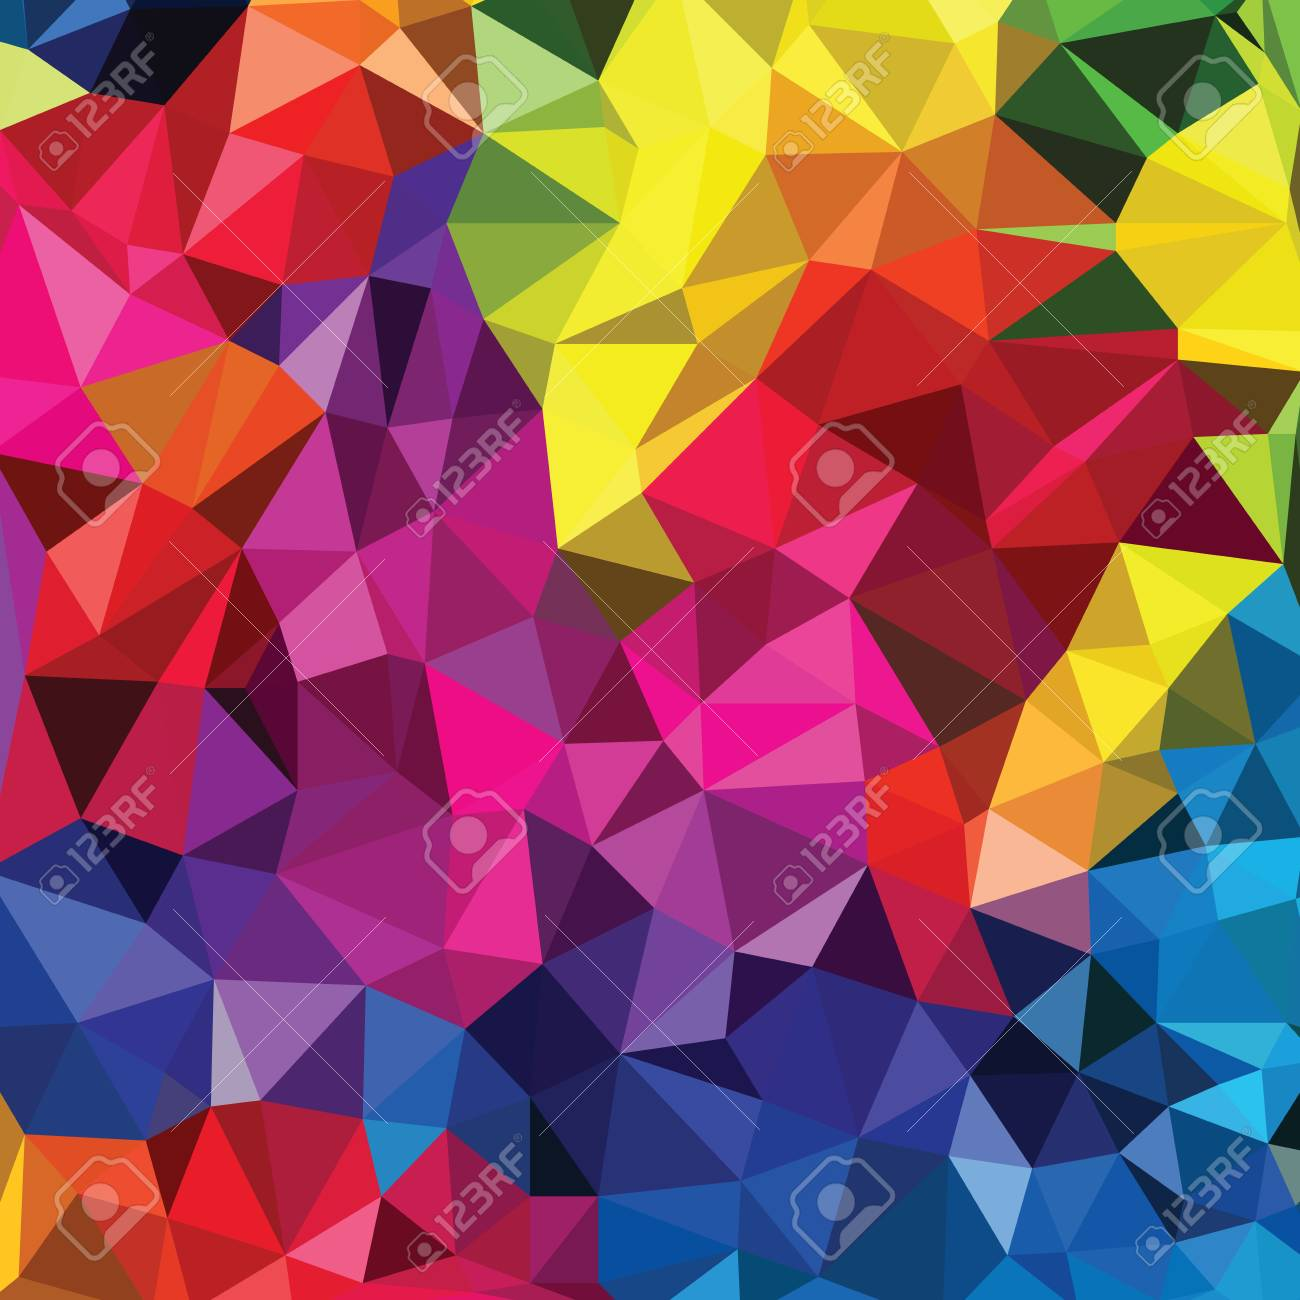 new abstract wallpaper with geometric structure - 42529840